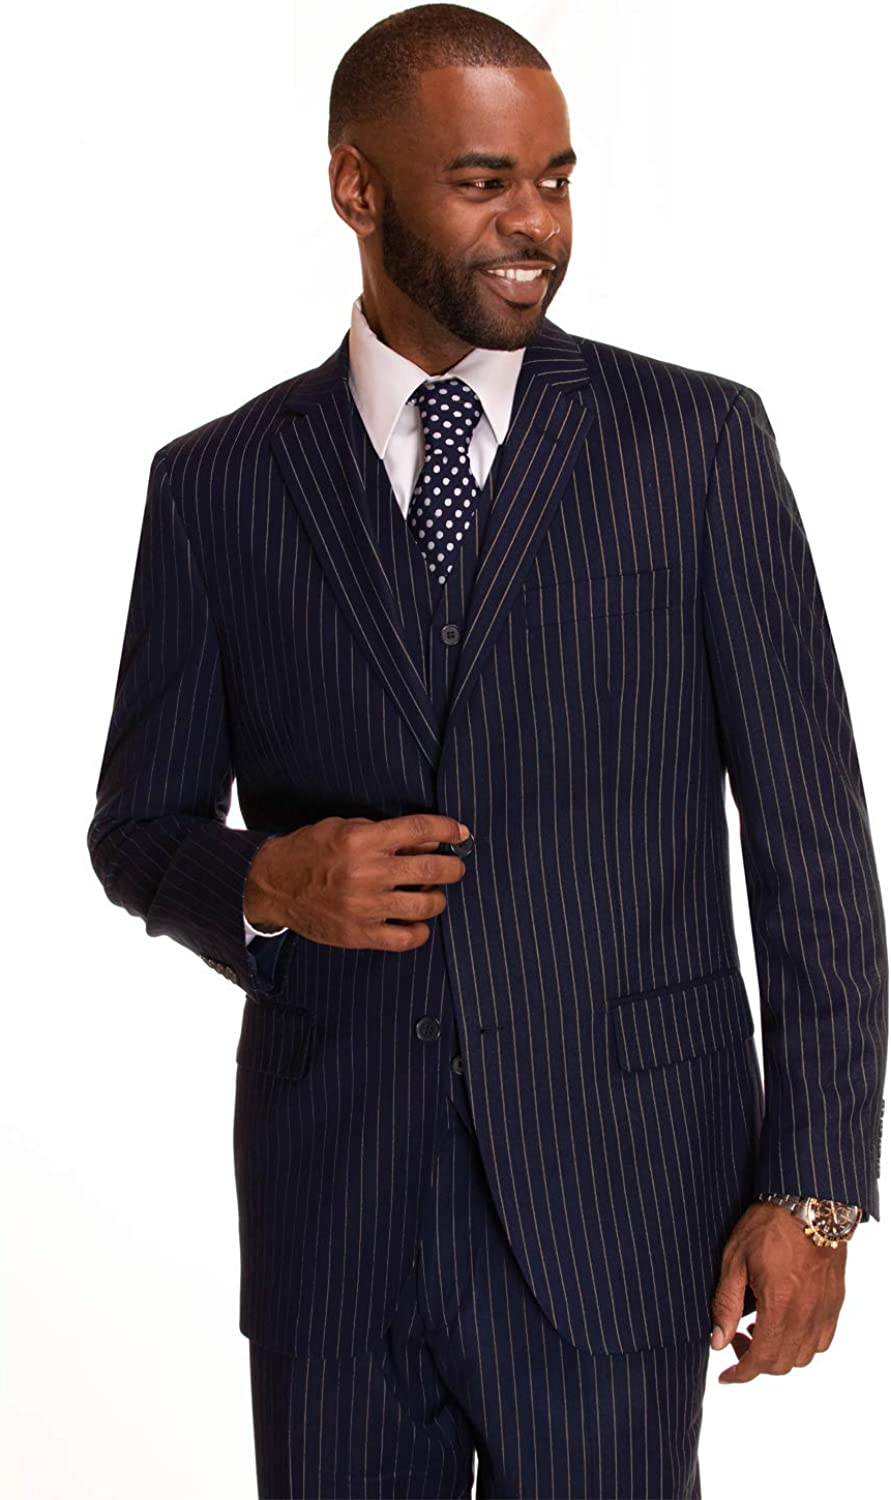 Mens Suit Classic Fit 3 Piece Suit for Men Plaid Windowpane Check Design Square Big and Tall